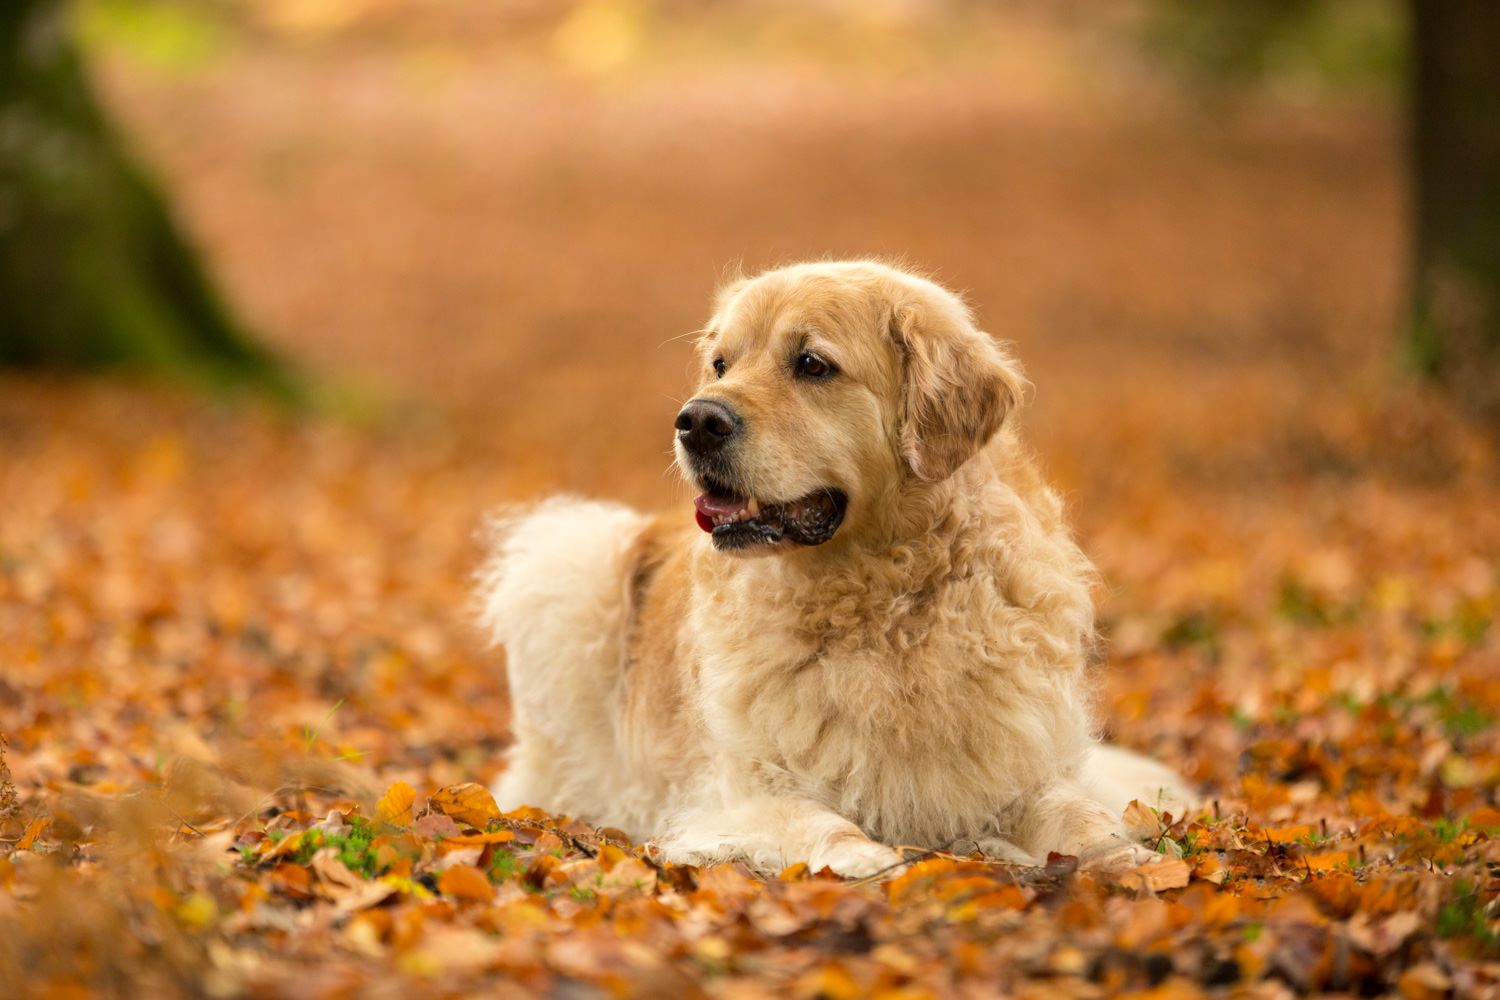 golden retriever lies in autumn leaves during dog photoshoot in chandlers ford